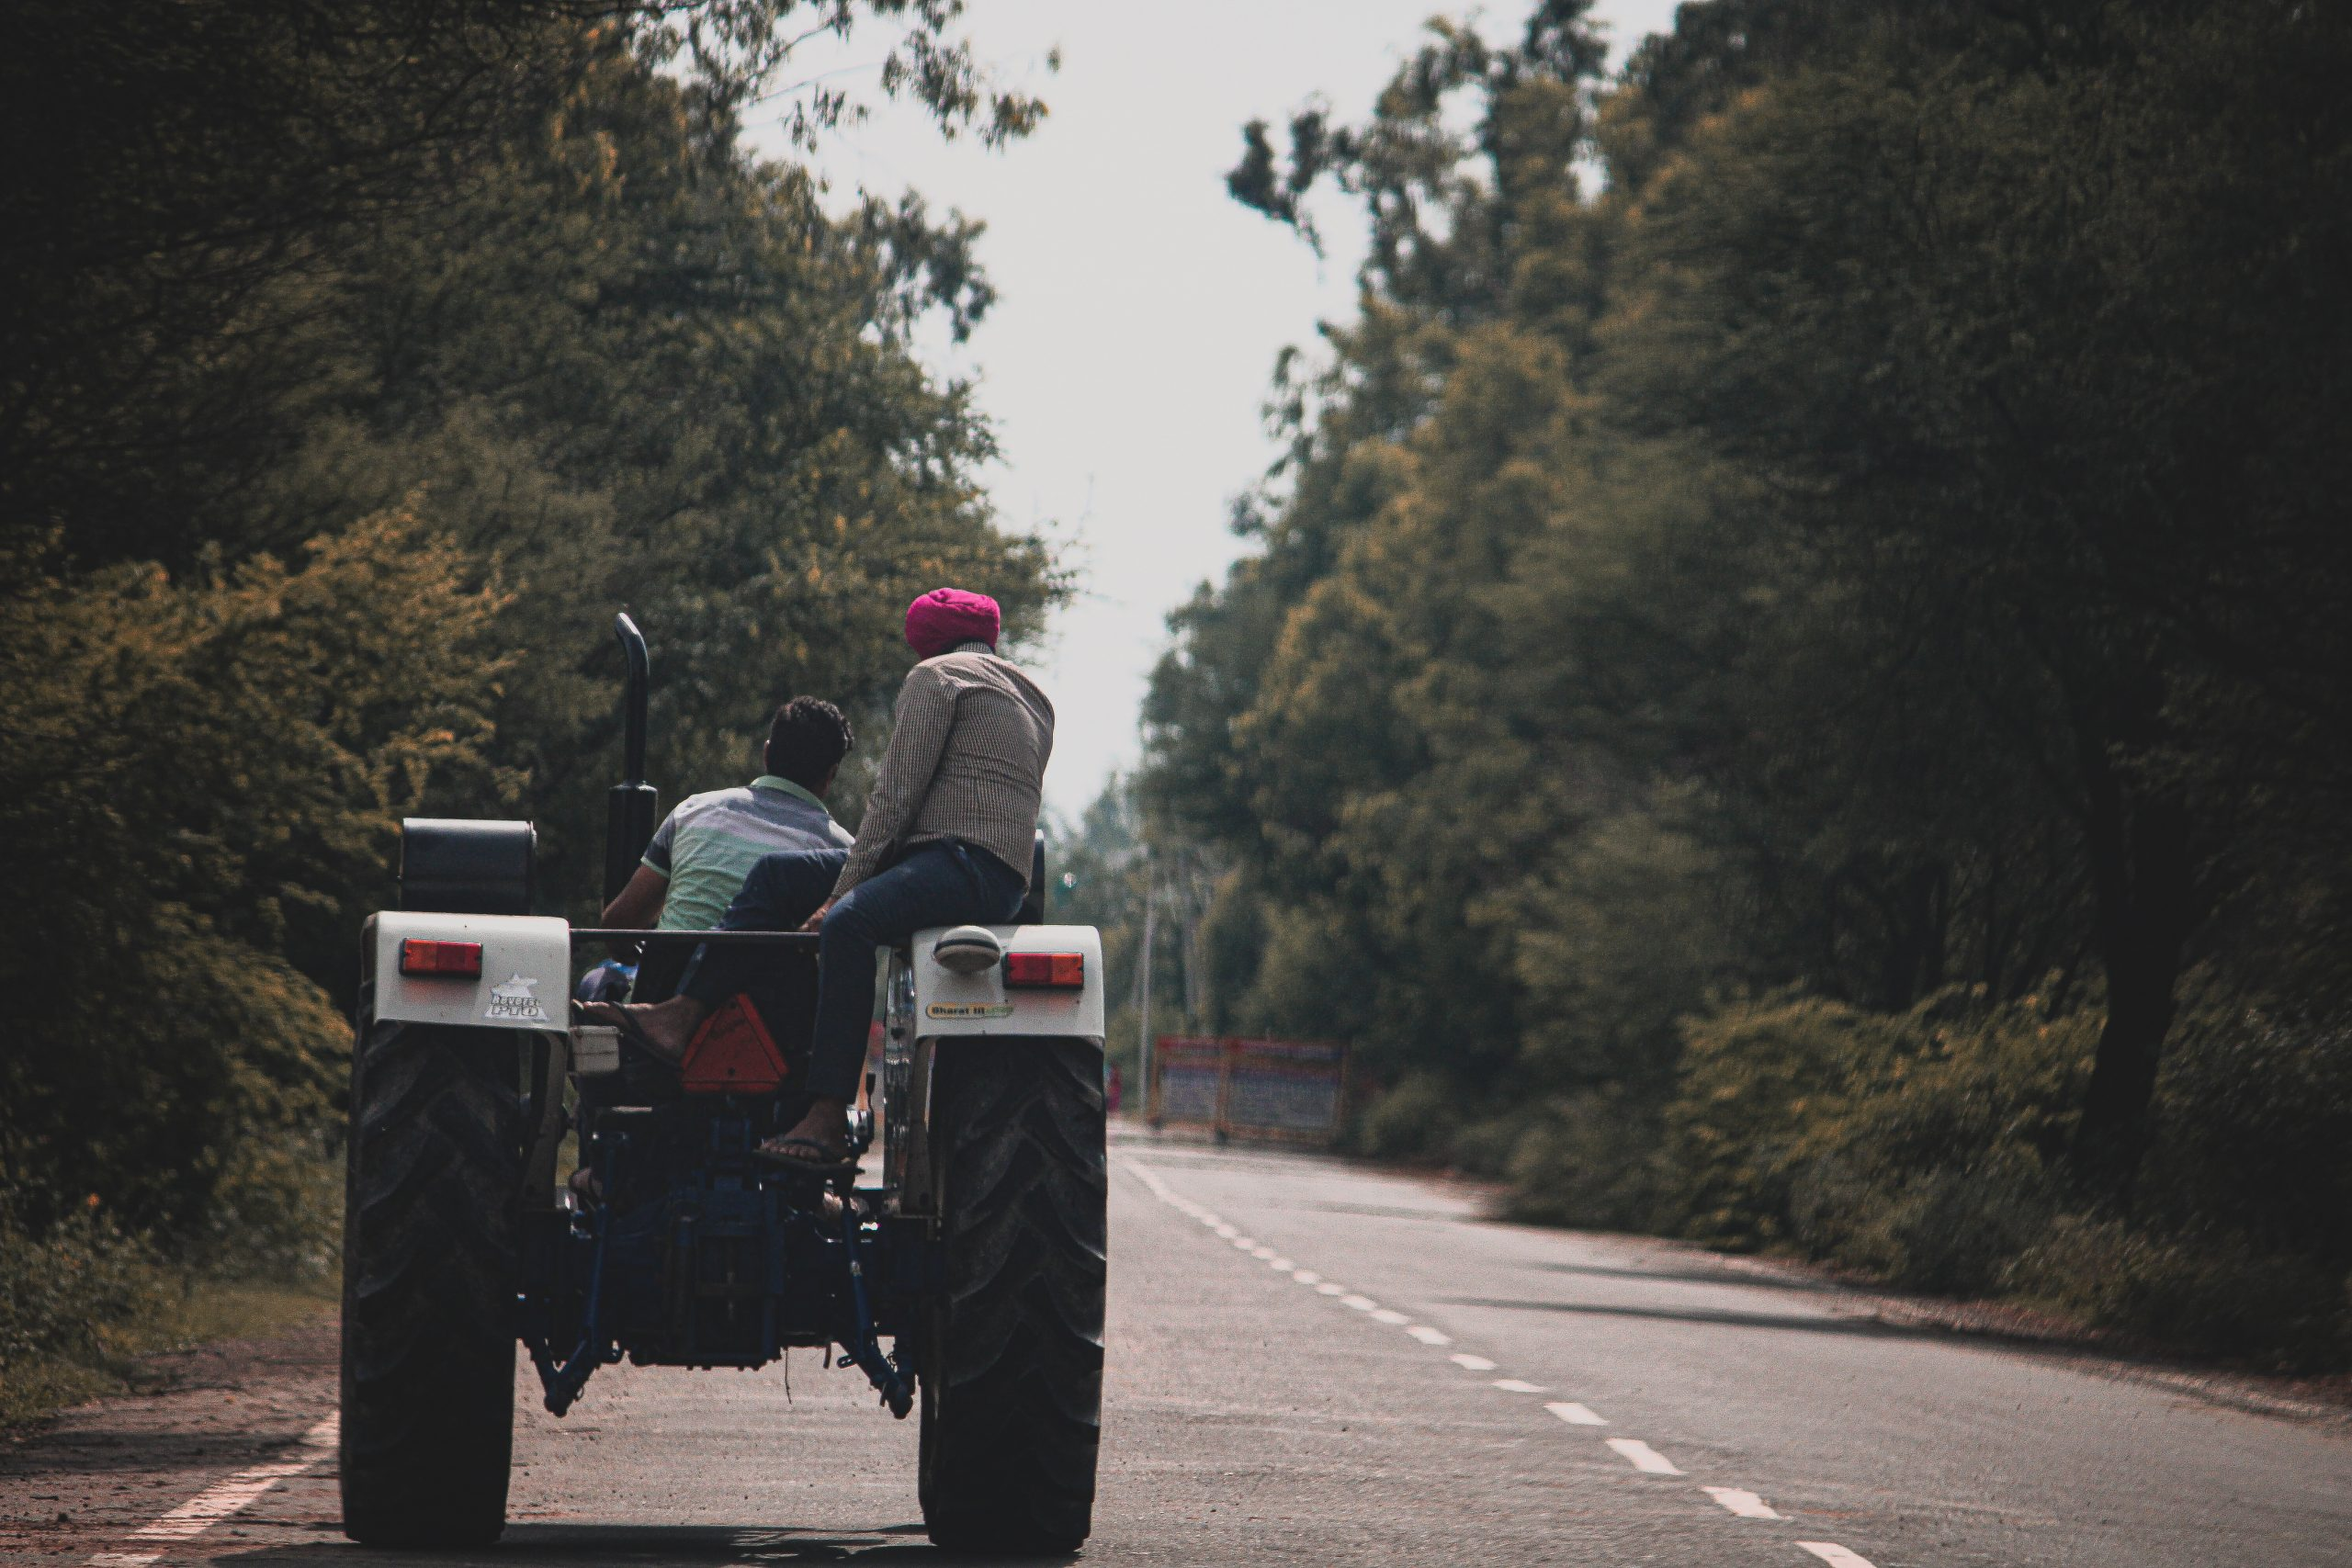 A tractor on a road